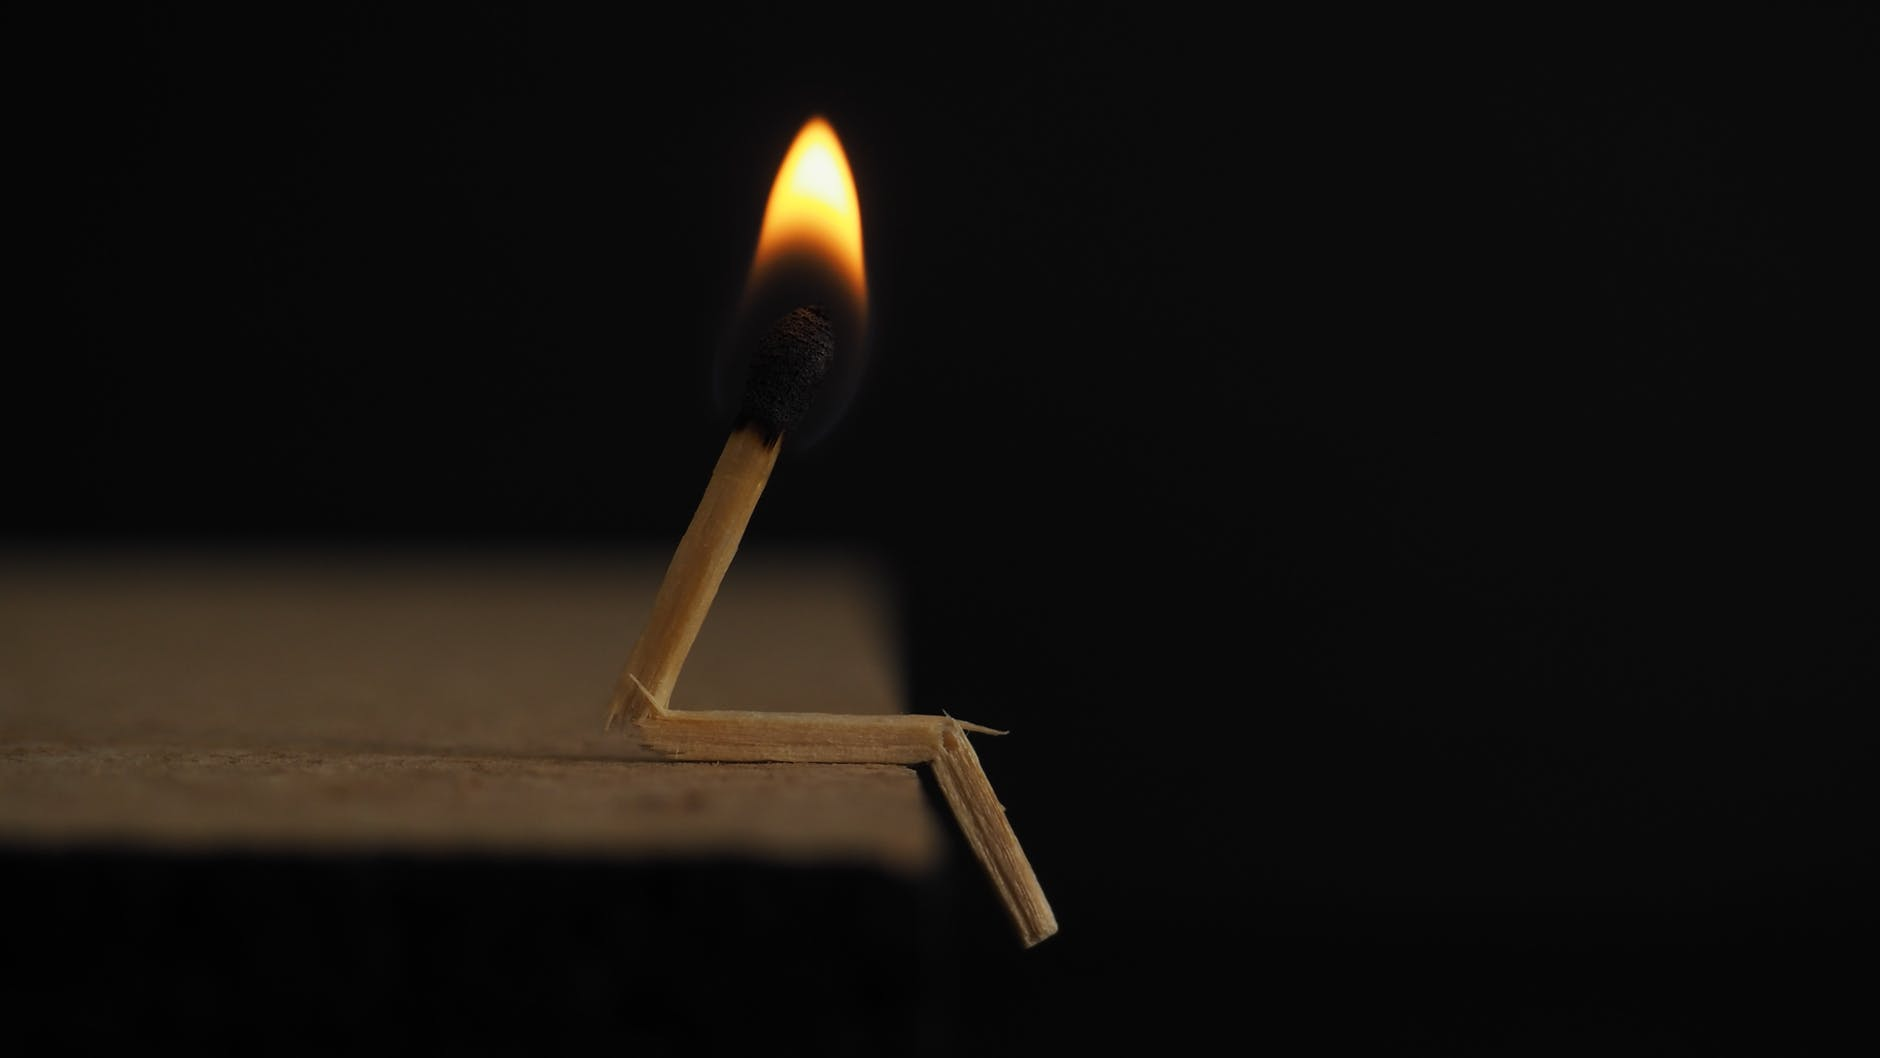 Image Description: A broken match is lit and sits at the edge of a table.